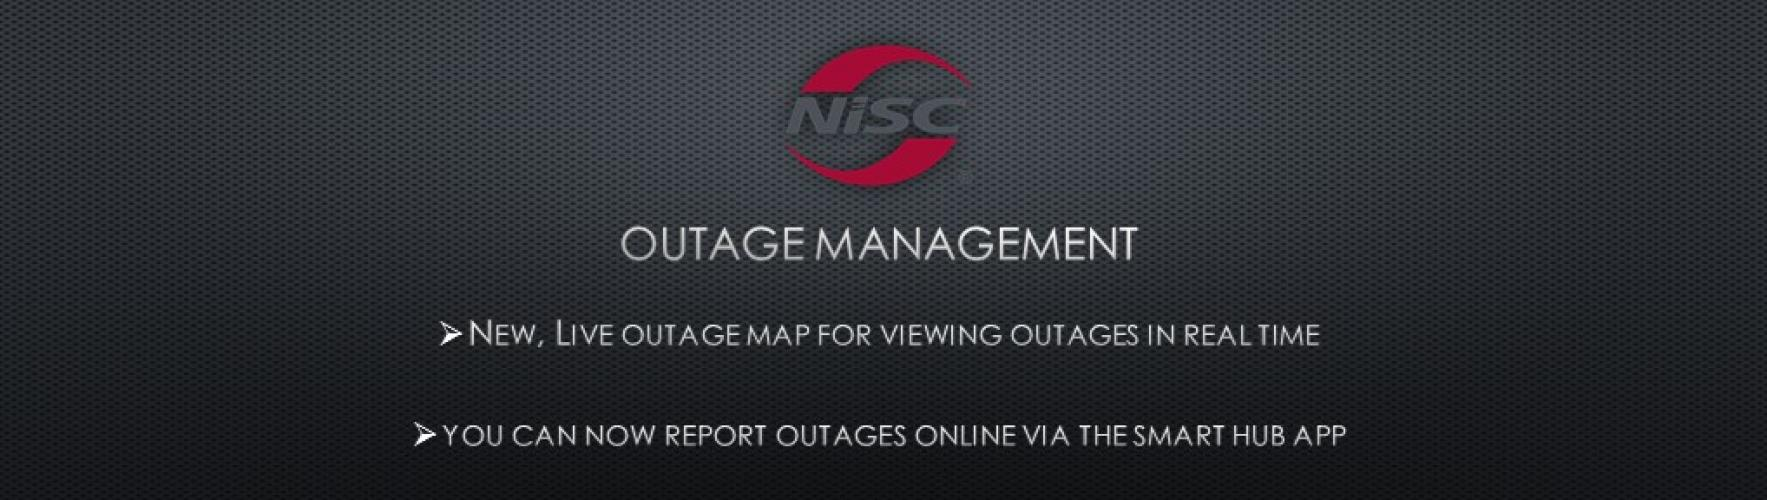 outage management info